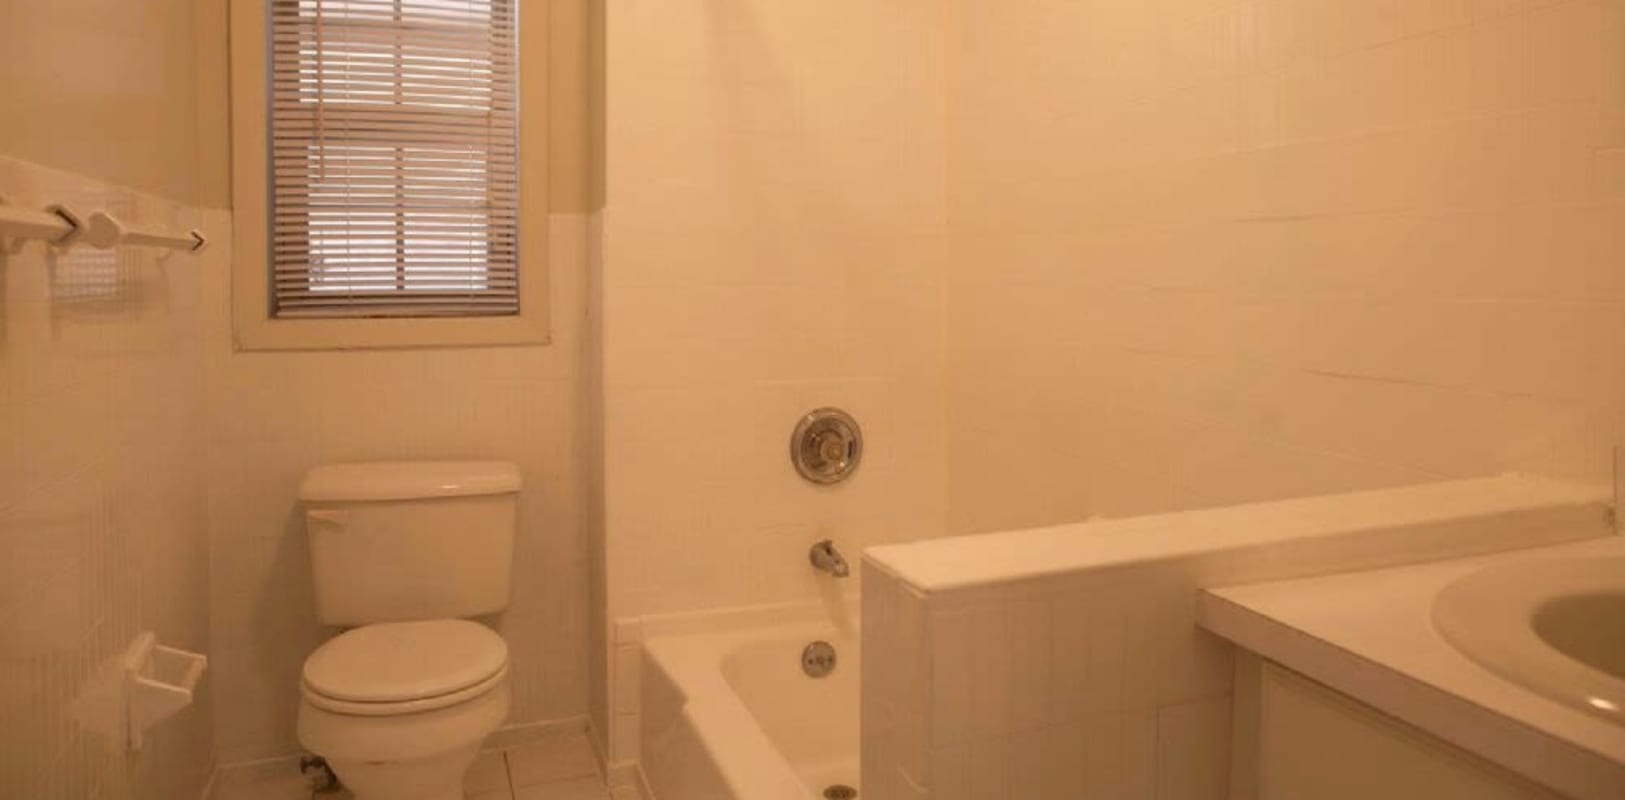 Bathroom with window to outside at Versailles Apartments in Ewing, New Jersey